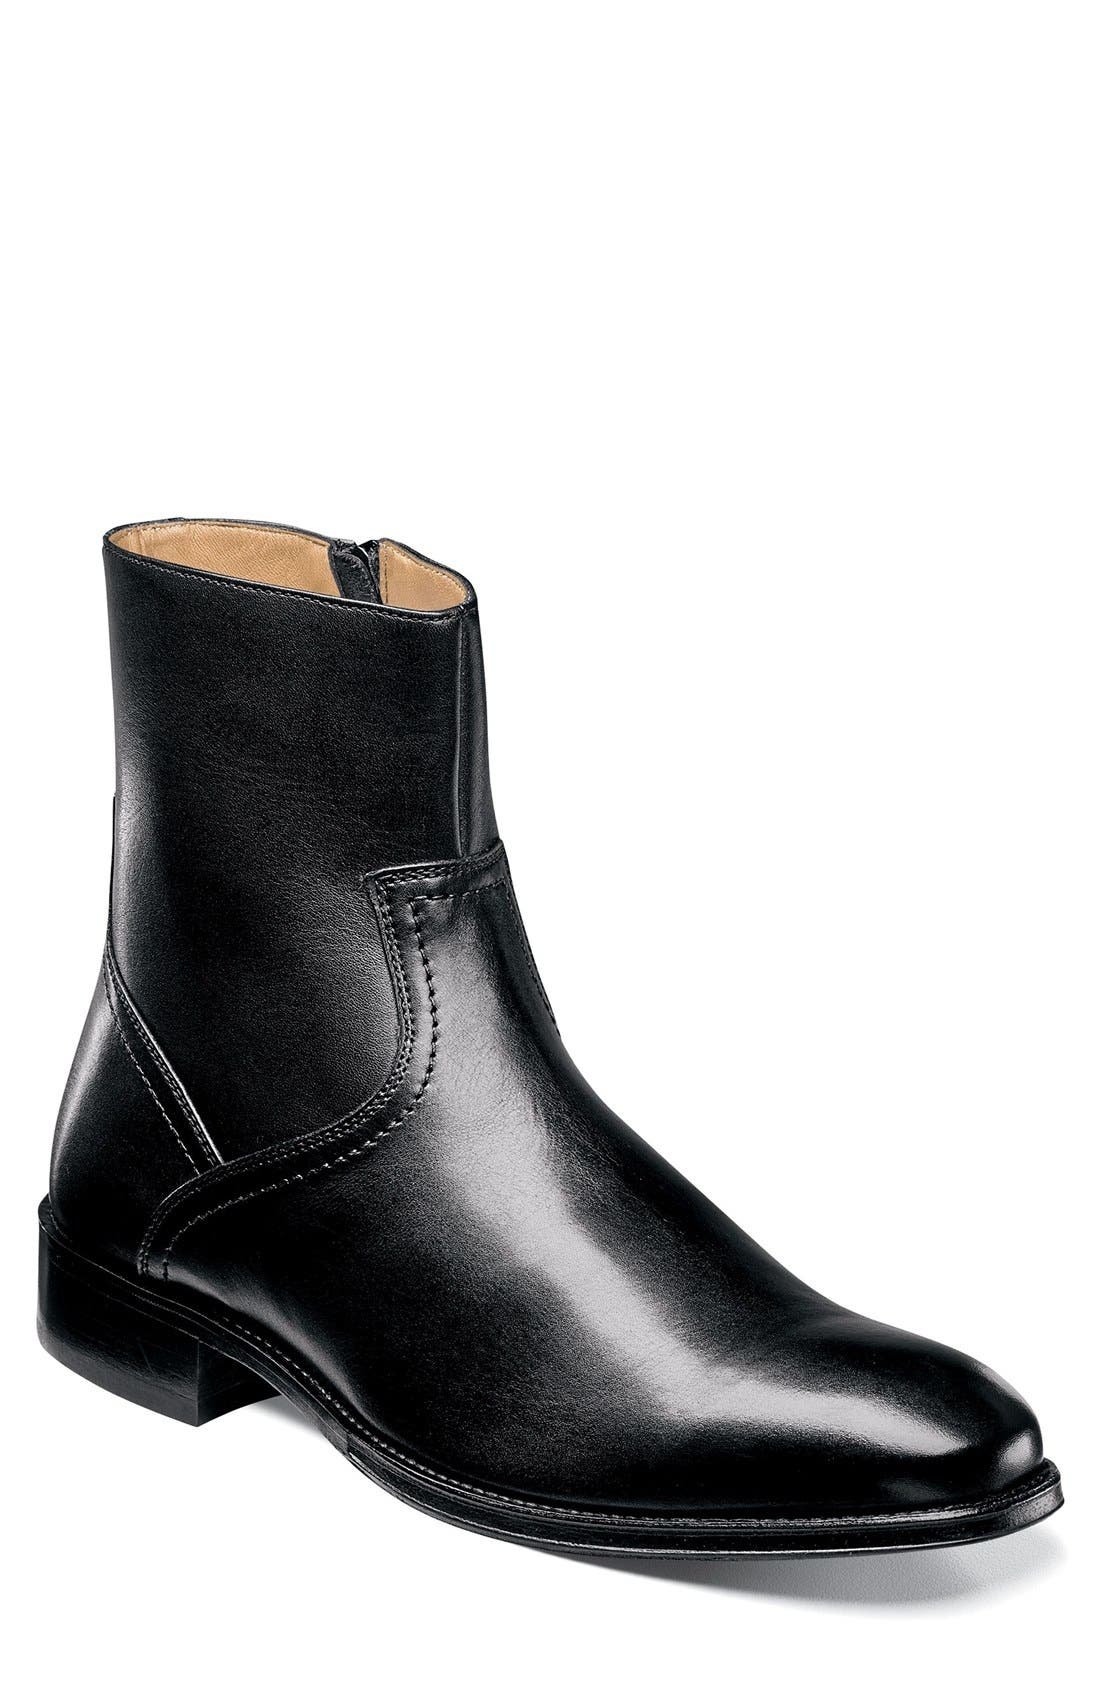 Alternate Image 1 Selected - Florsheim Capital Zip Boot (Men)